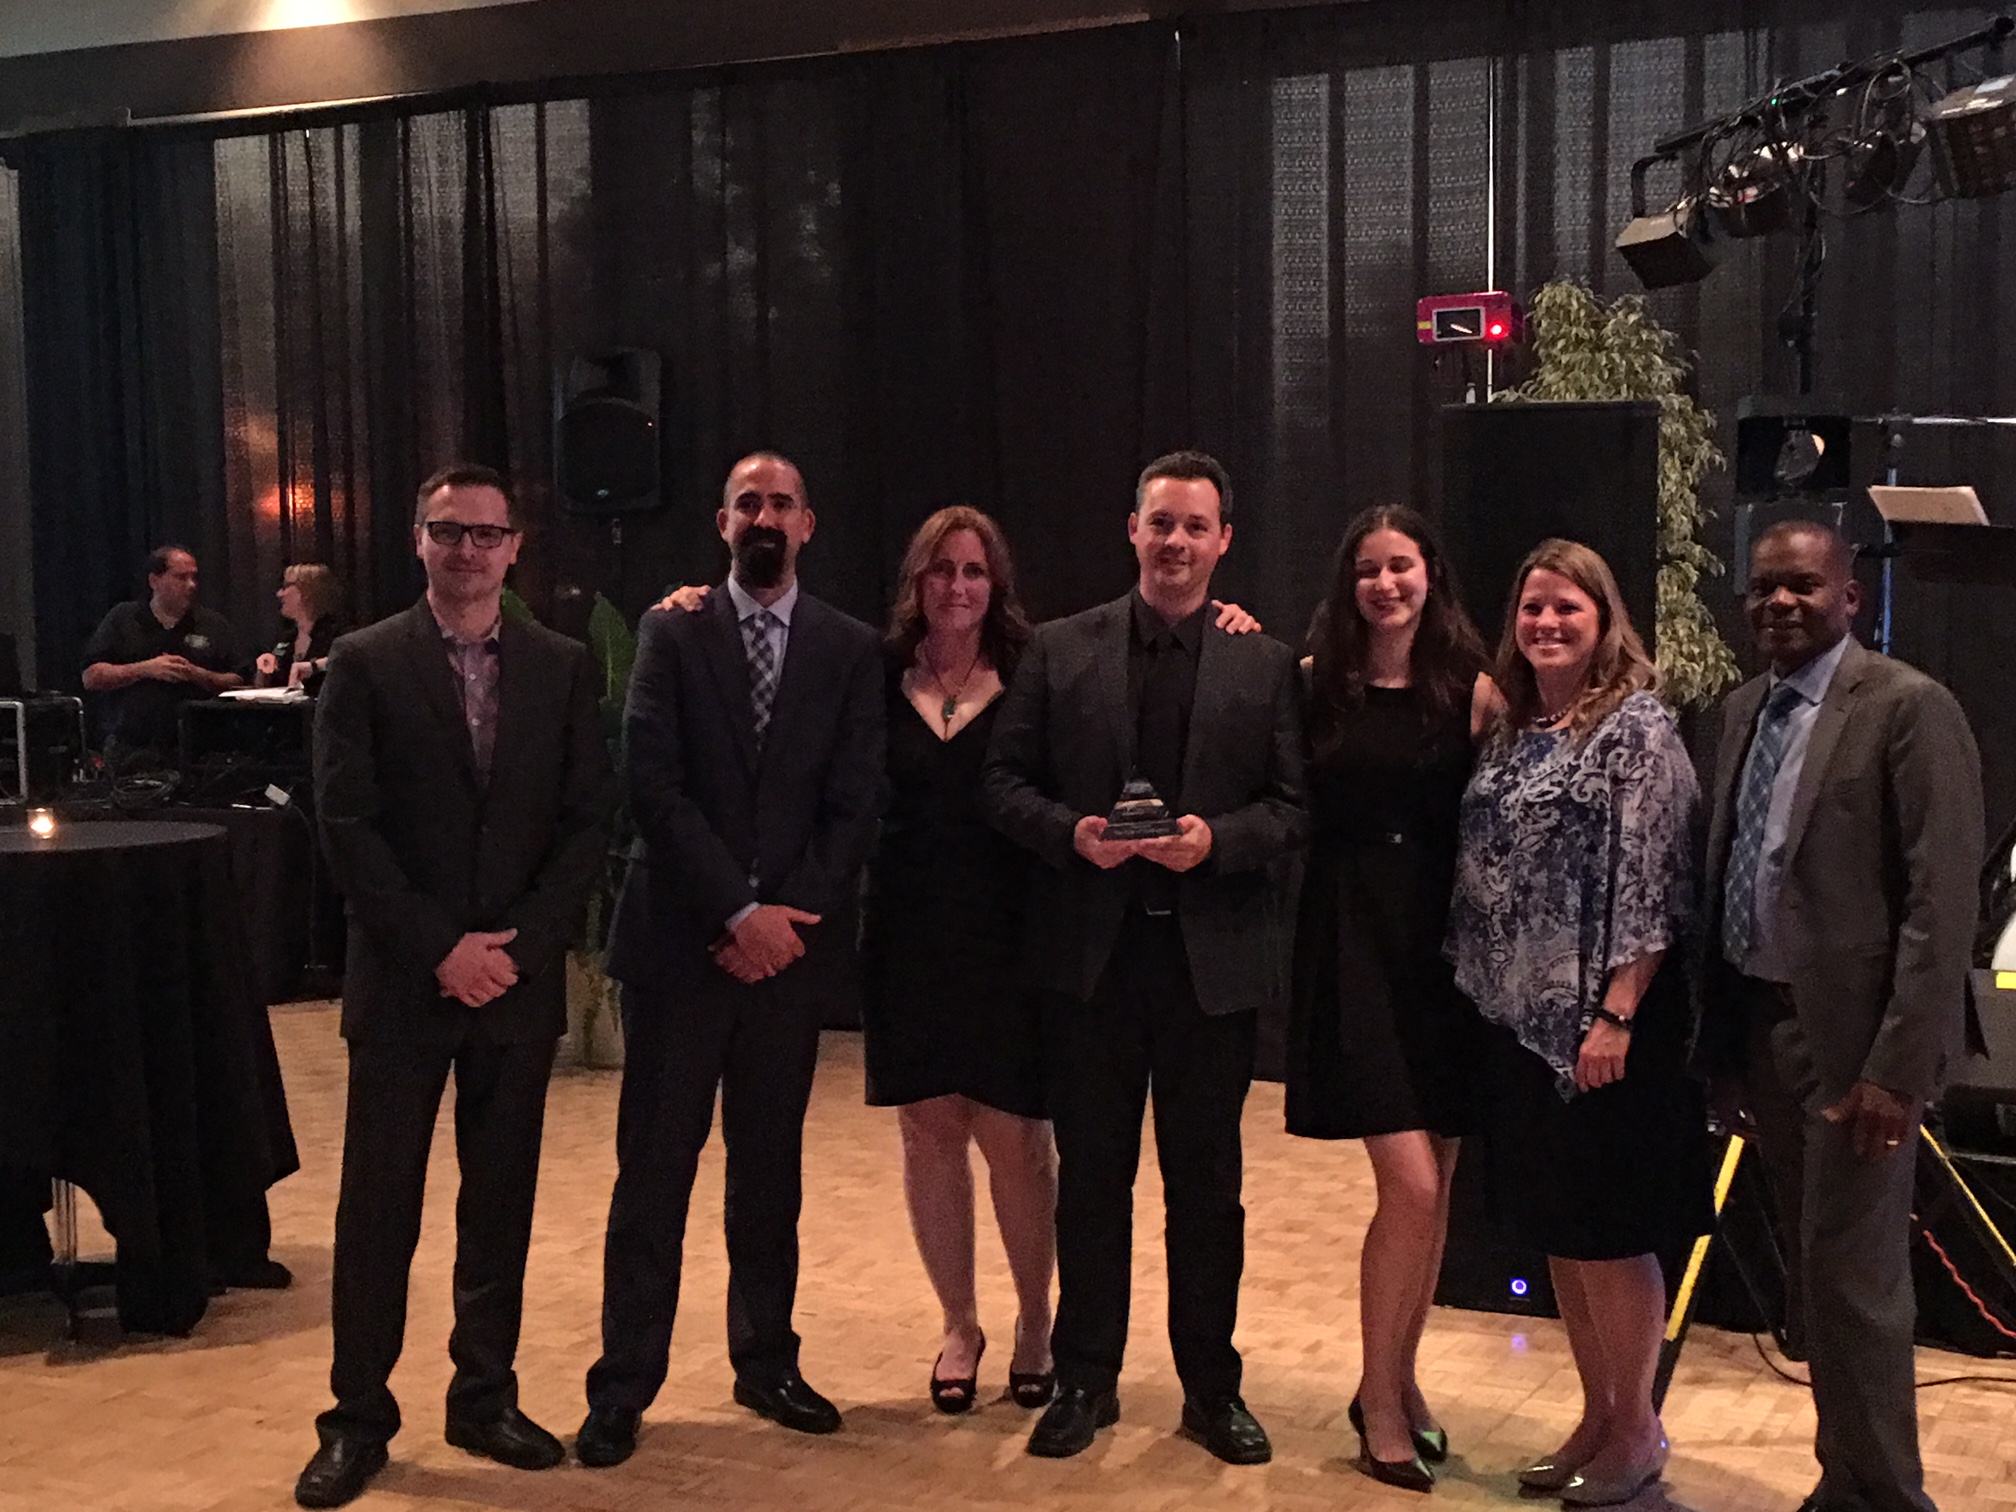 Staff from Capital Works and Finance accepted the CNAM Asset Management Ambassador Award on behalf of the City of Burlington.